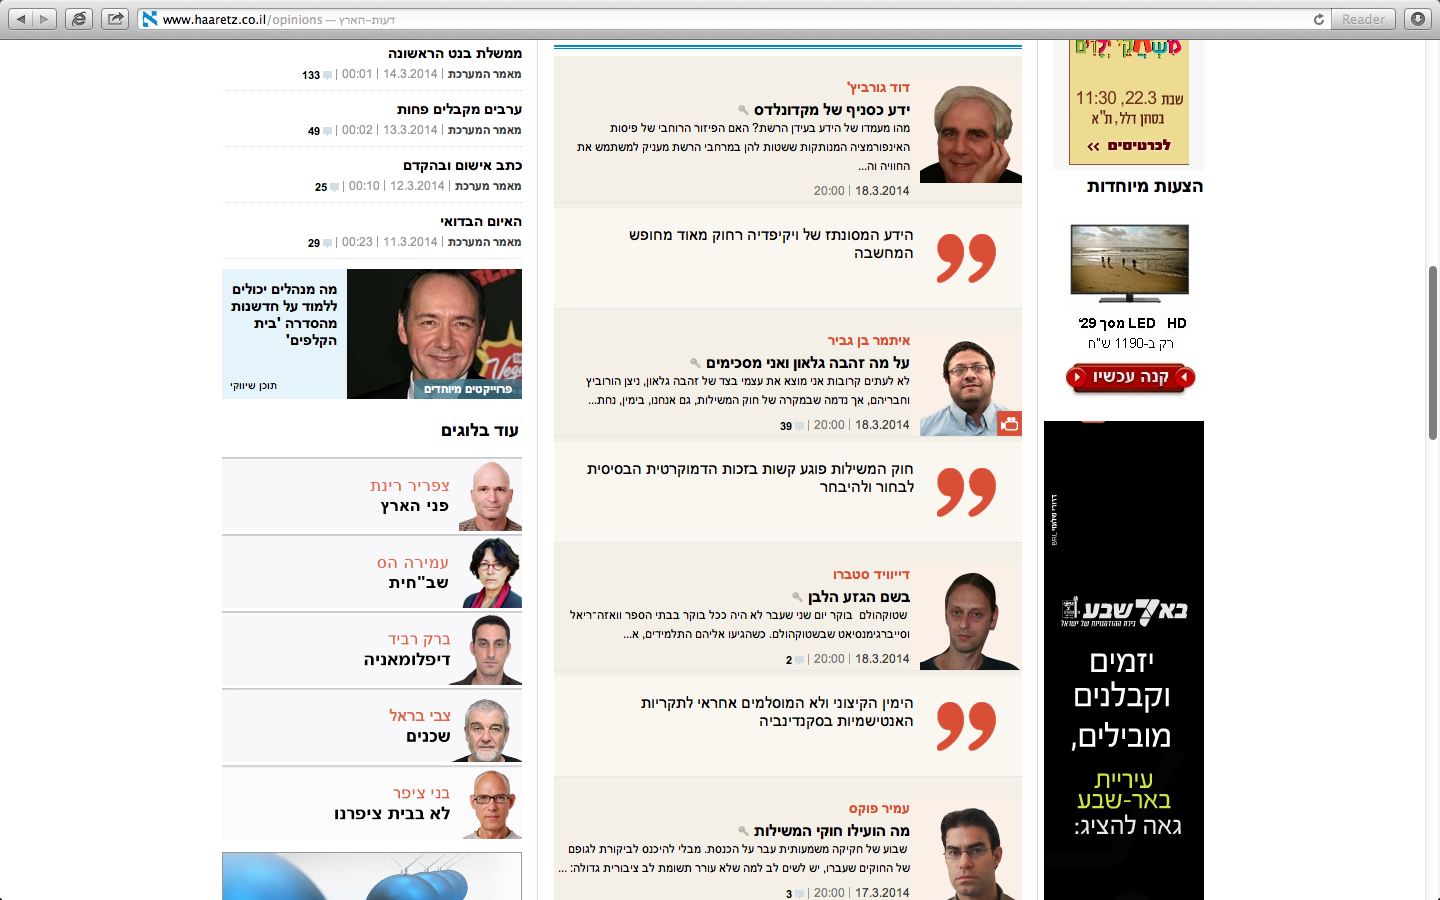 haaretz.co.il, Opinions Front Page